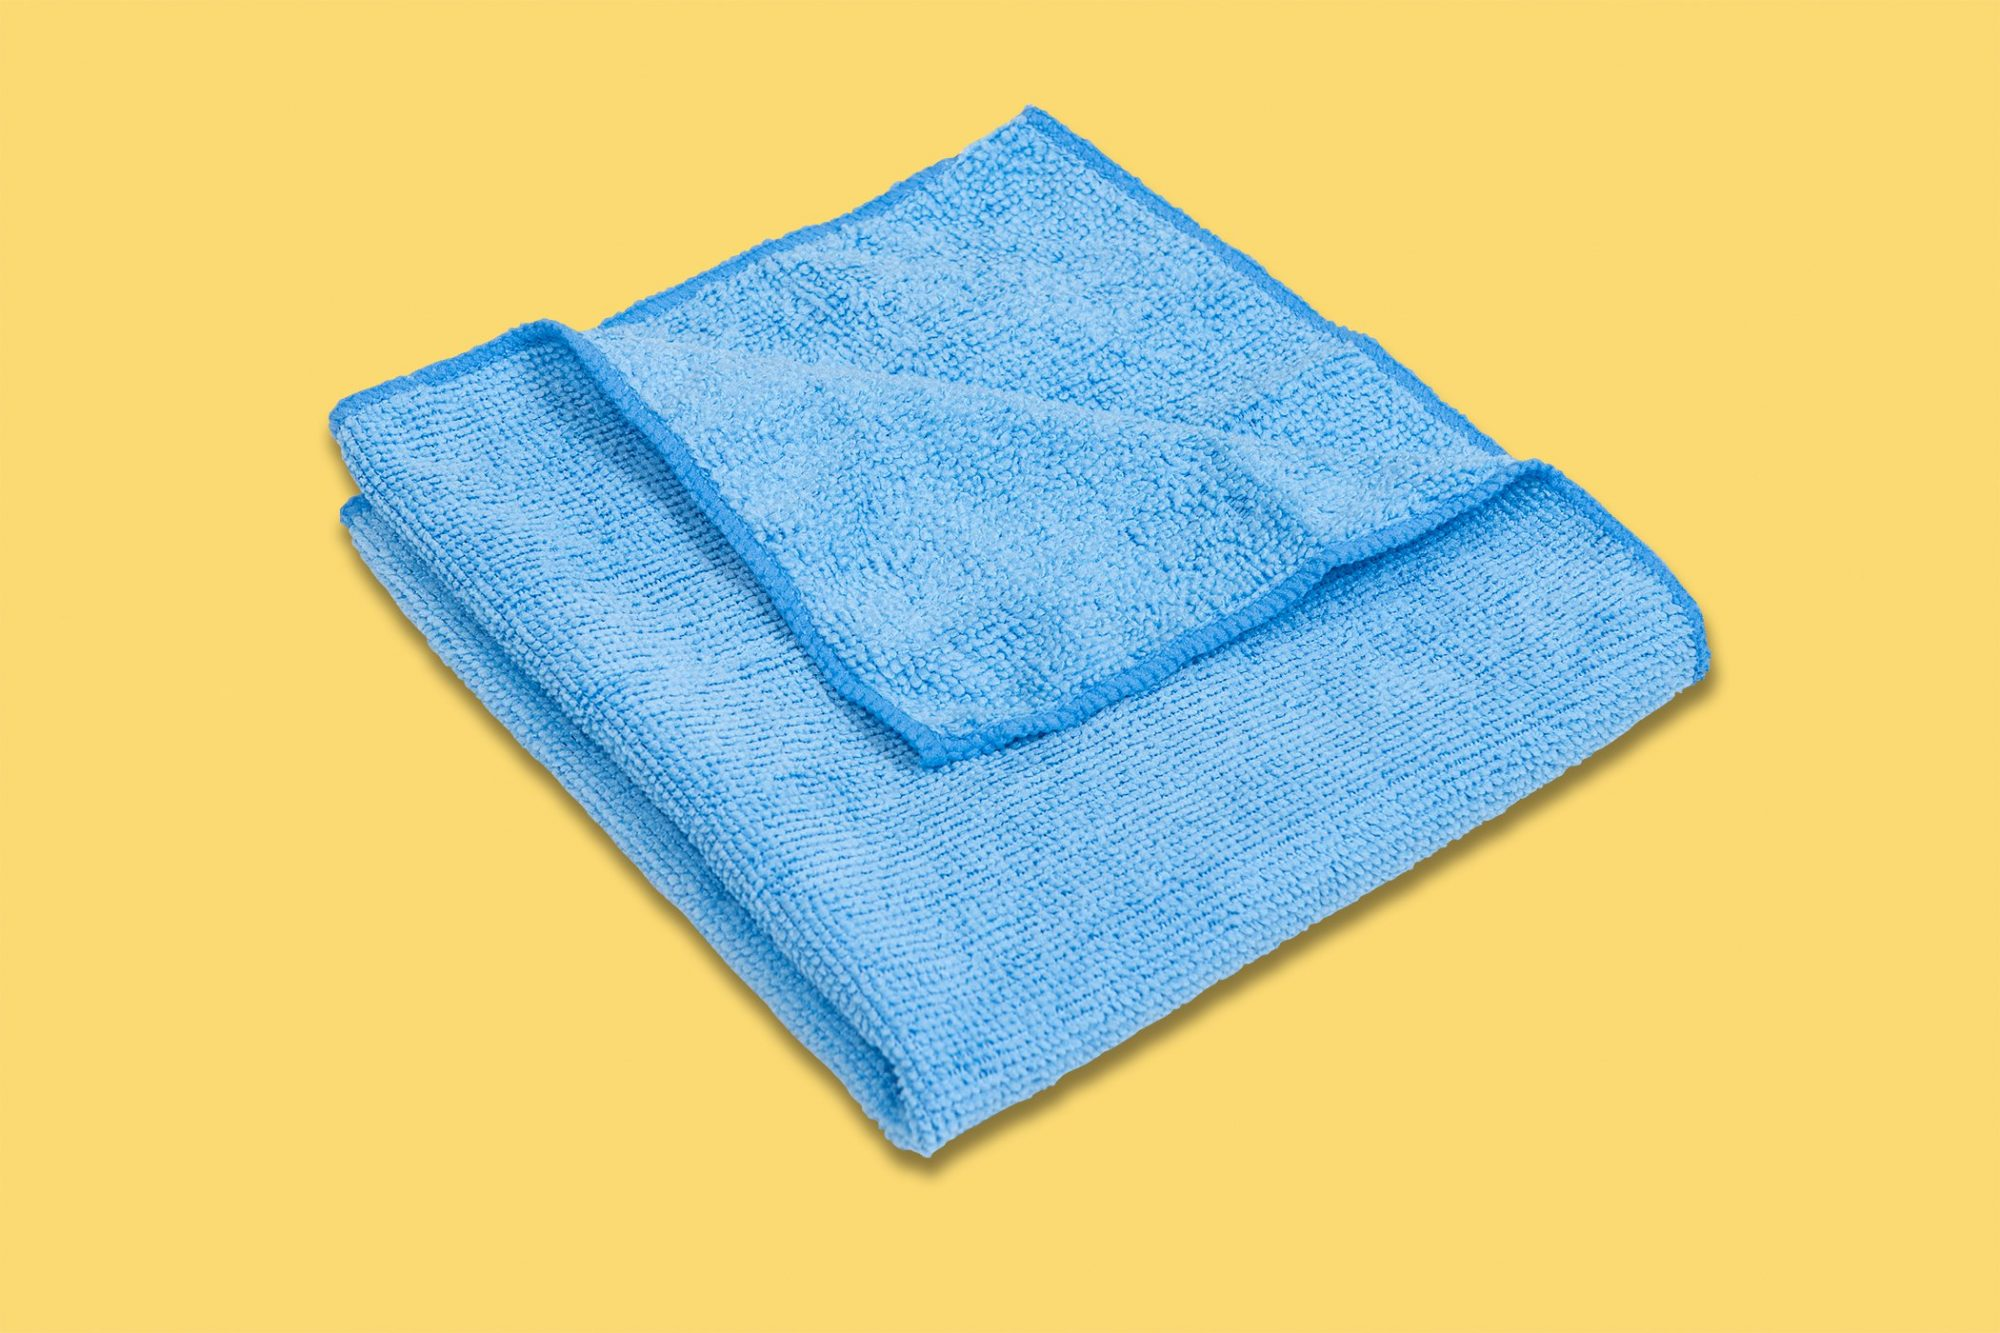 170414-spring-cleaning-microfiber-cleaning-cloths